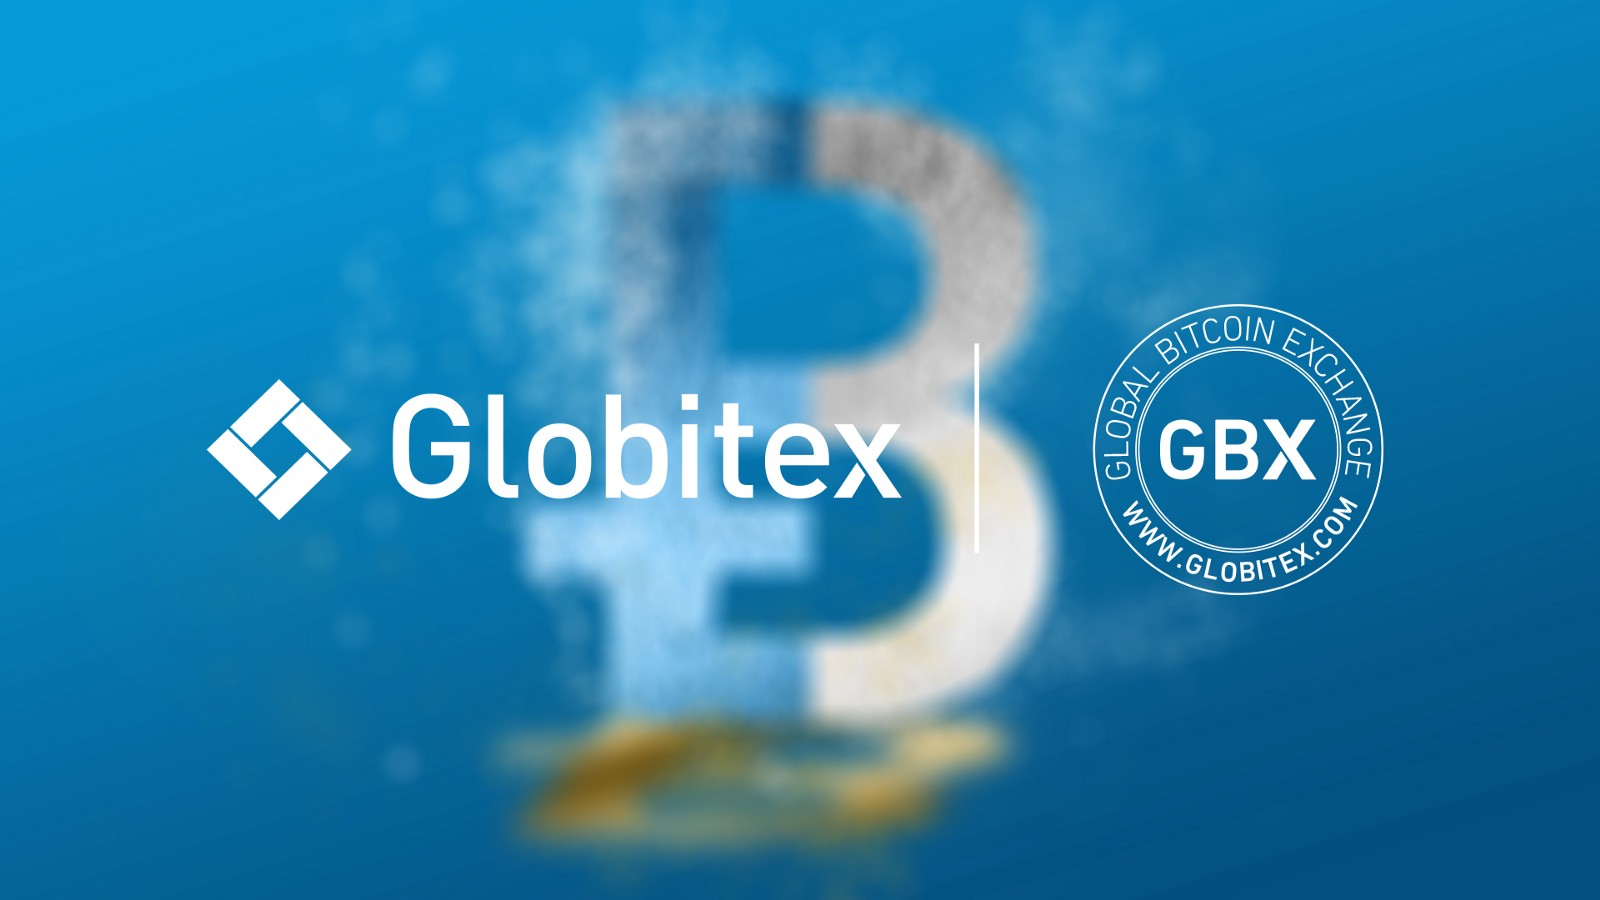 Globitex Introduces A Banking Solution With Instant Cash